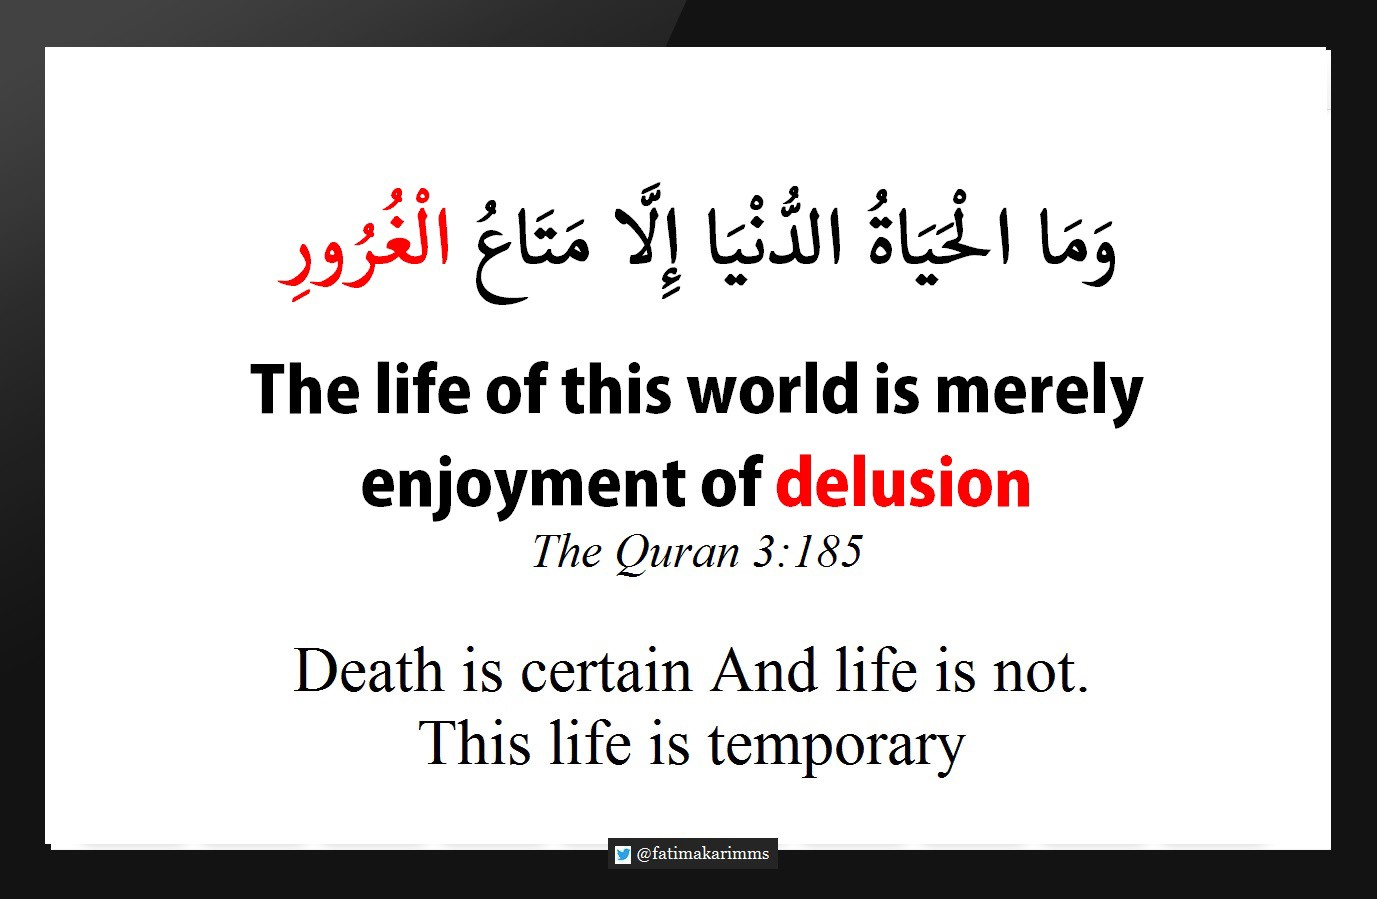 The life of this world is merely enjoyment of delusion